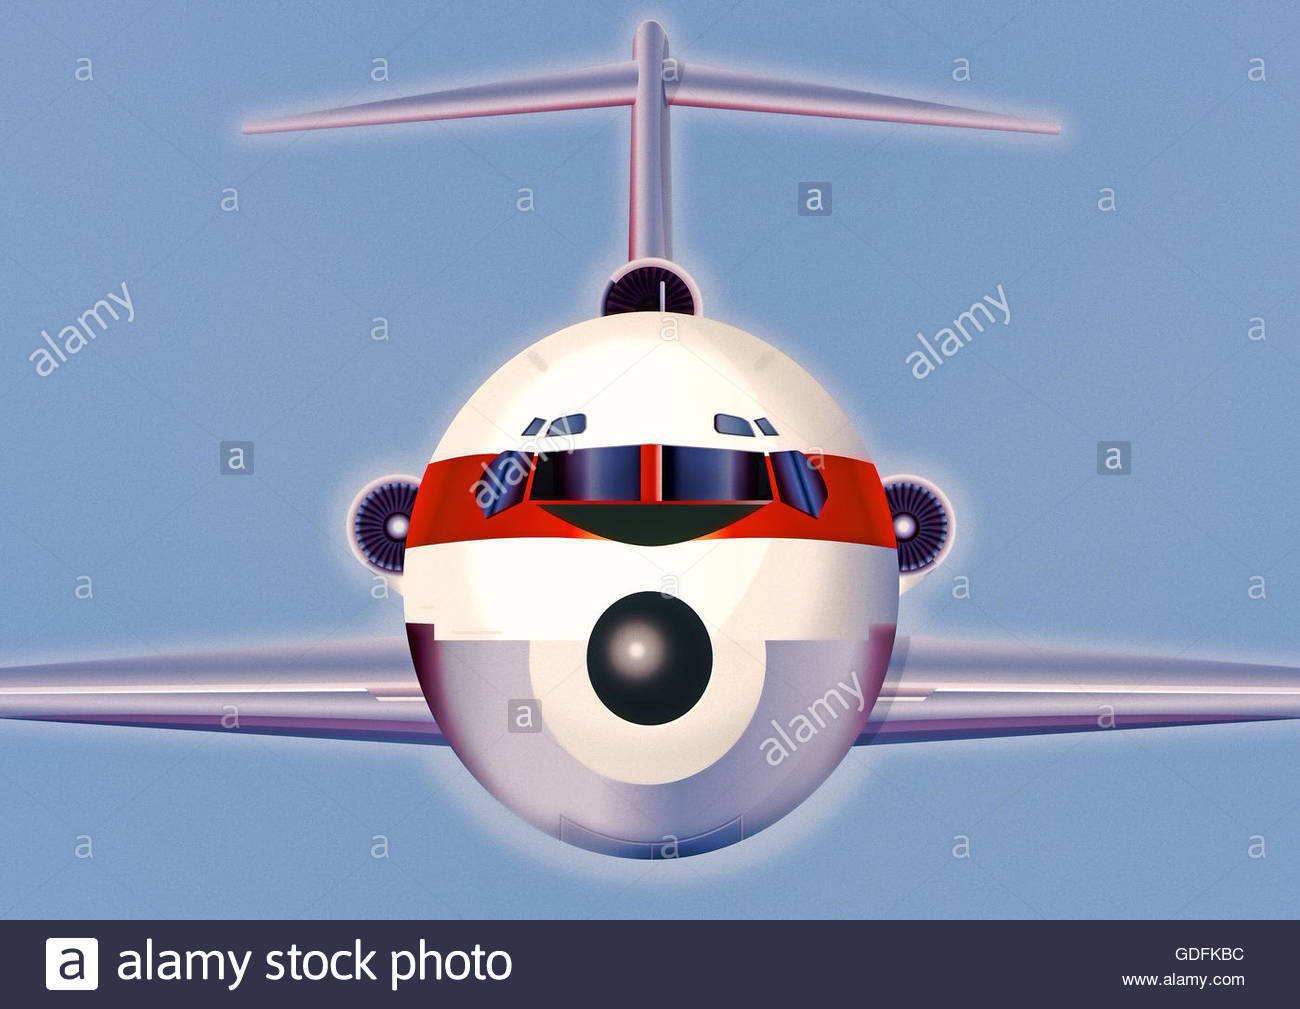 retro aircraft passenger commercial jet airliner illustration - Stock Image